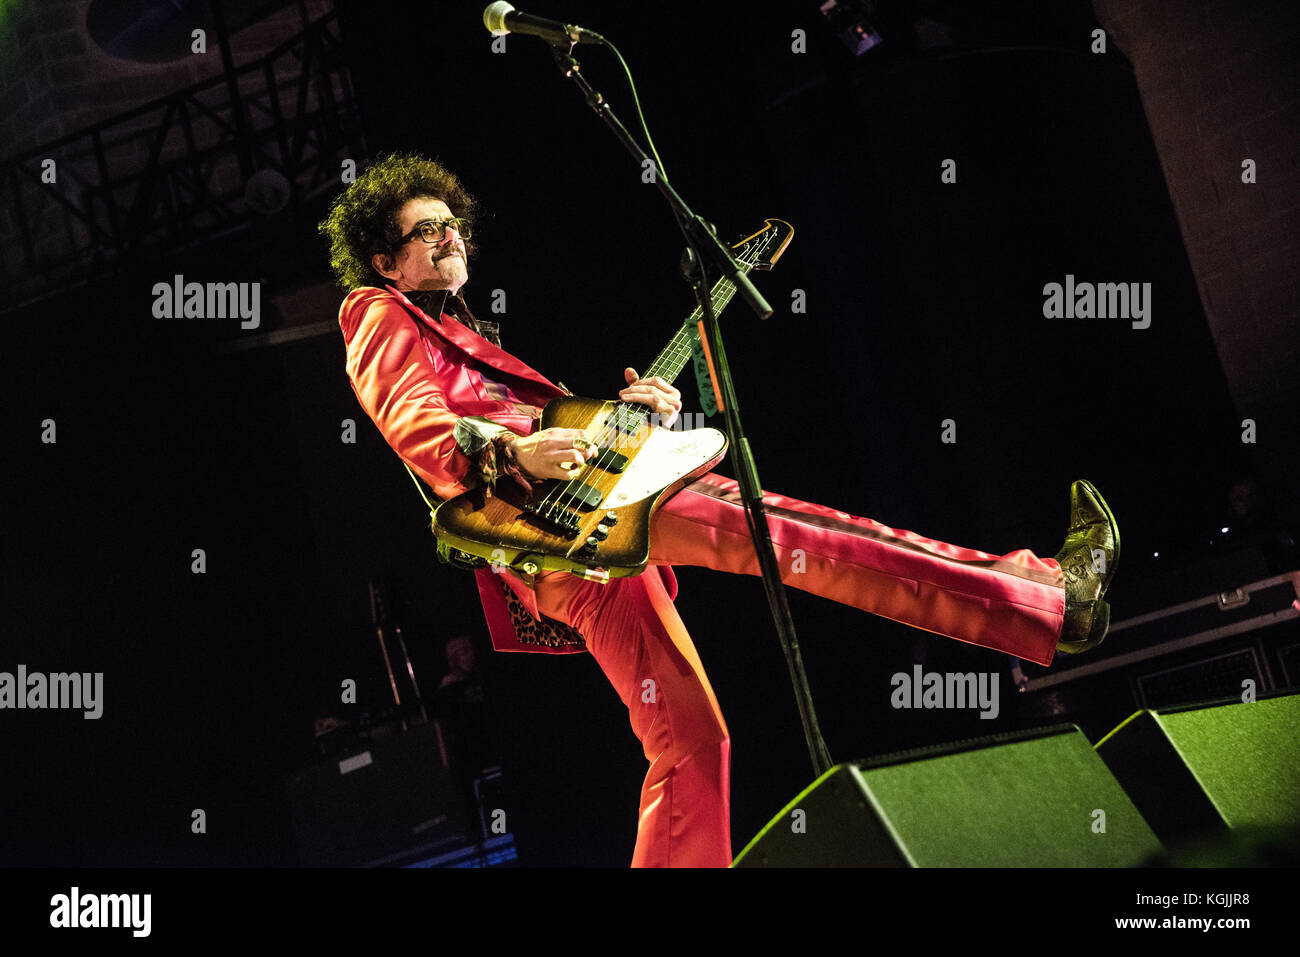 Milan, Italy. 08th Nov, 2017. Frankie Poullainperfoms with The Darkness at Alcatraz in Milan, Italy 8th november - Stock Image